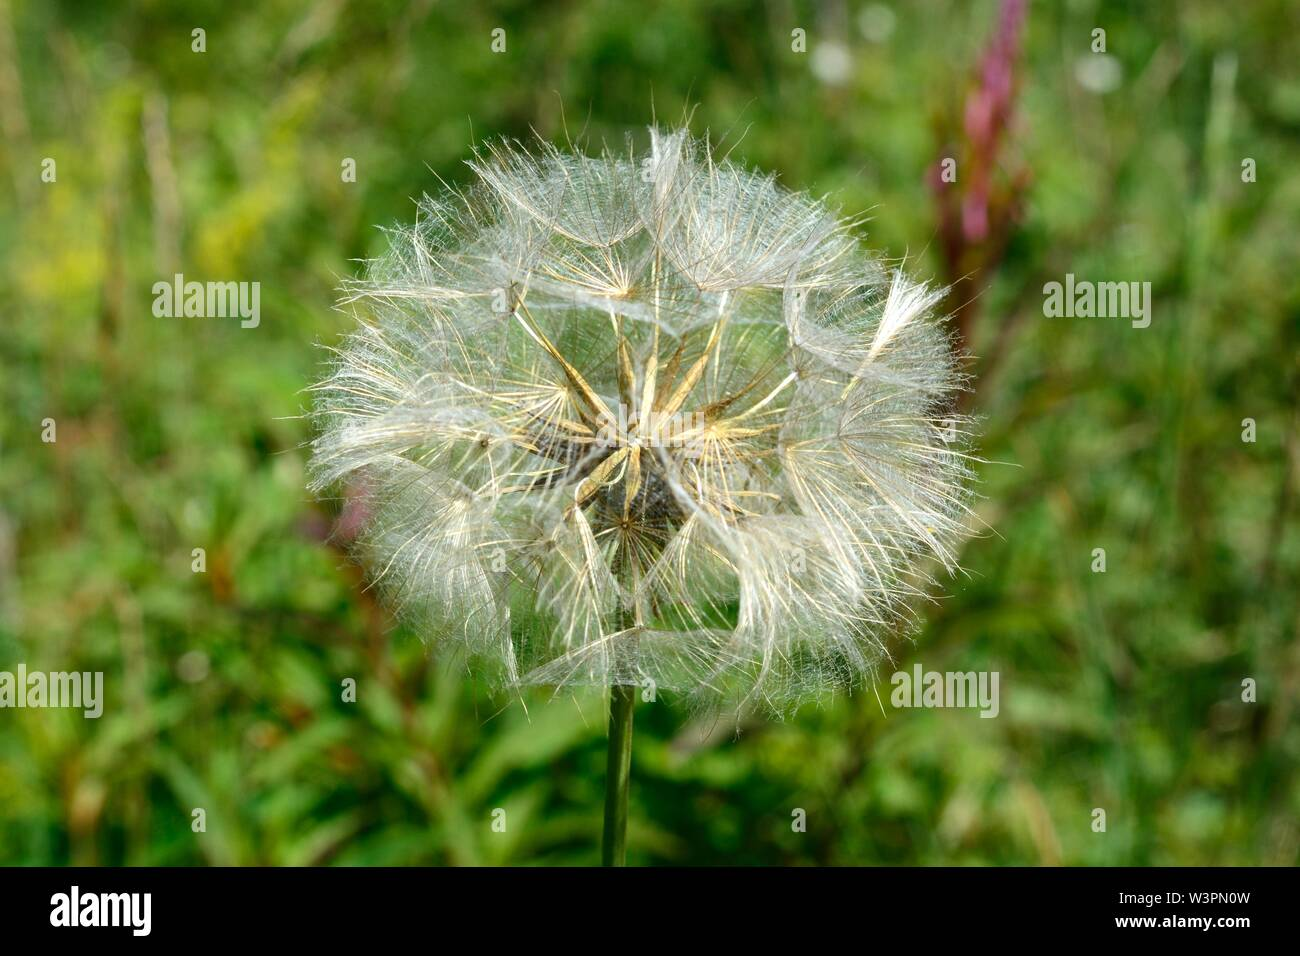 Goats beard seed head Jack go to bed at noon Tragopogon pratensis daisy dandelion family Stock Photo